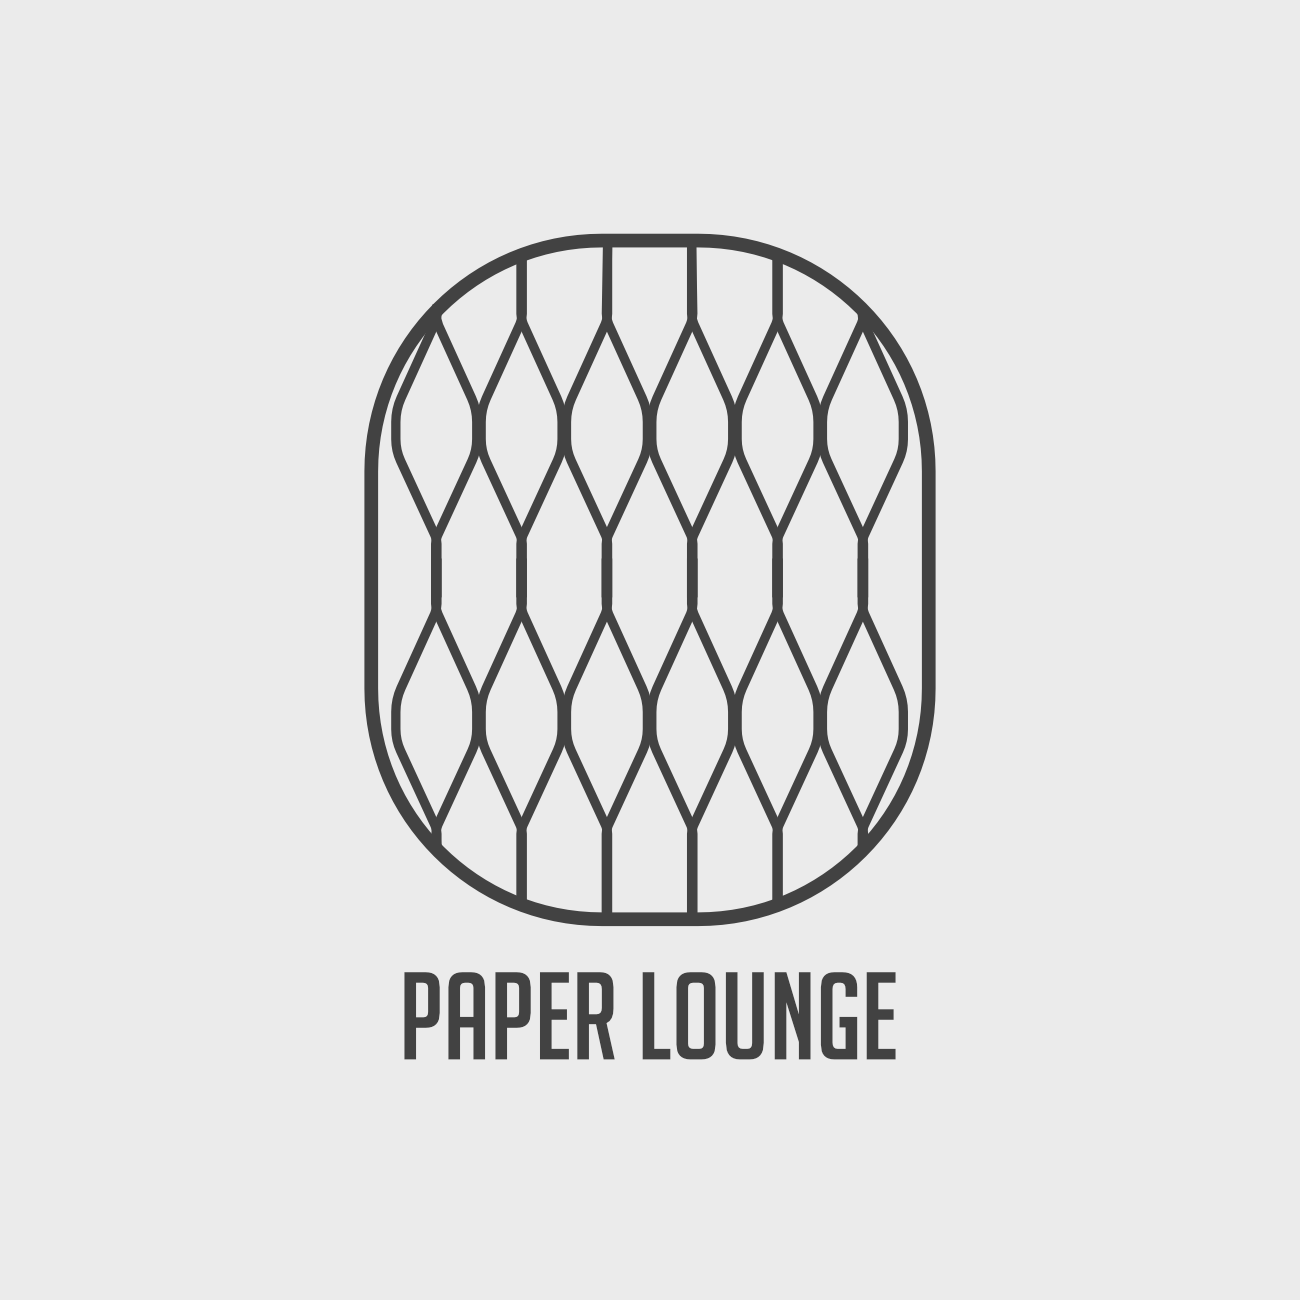 Paper Lounge logo for online store